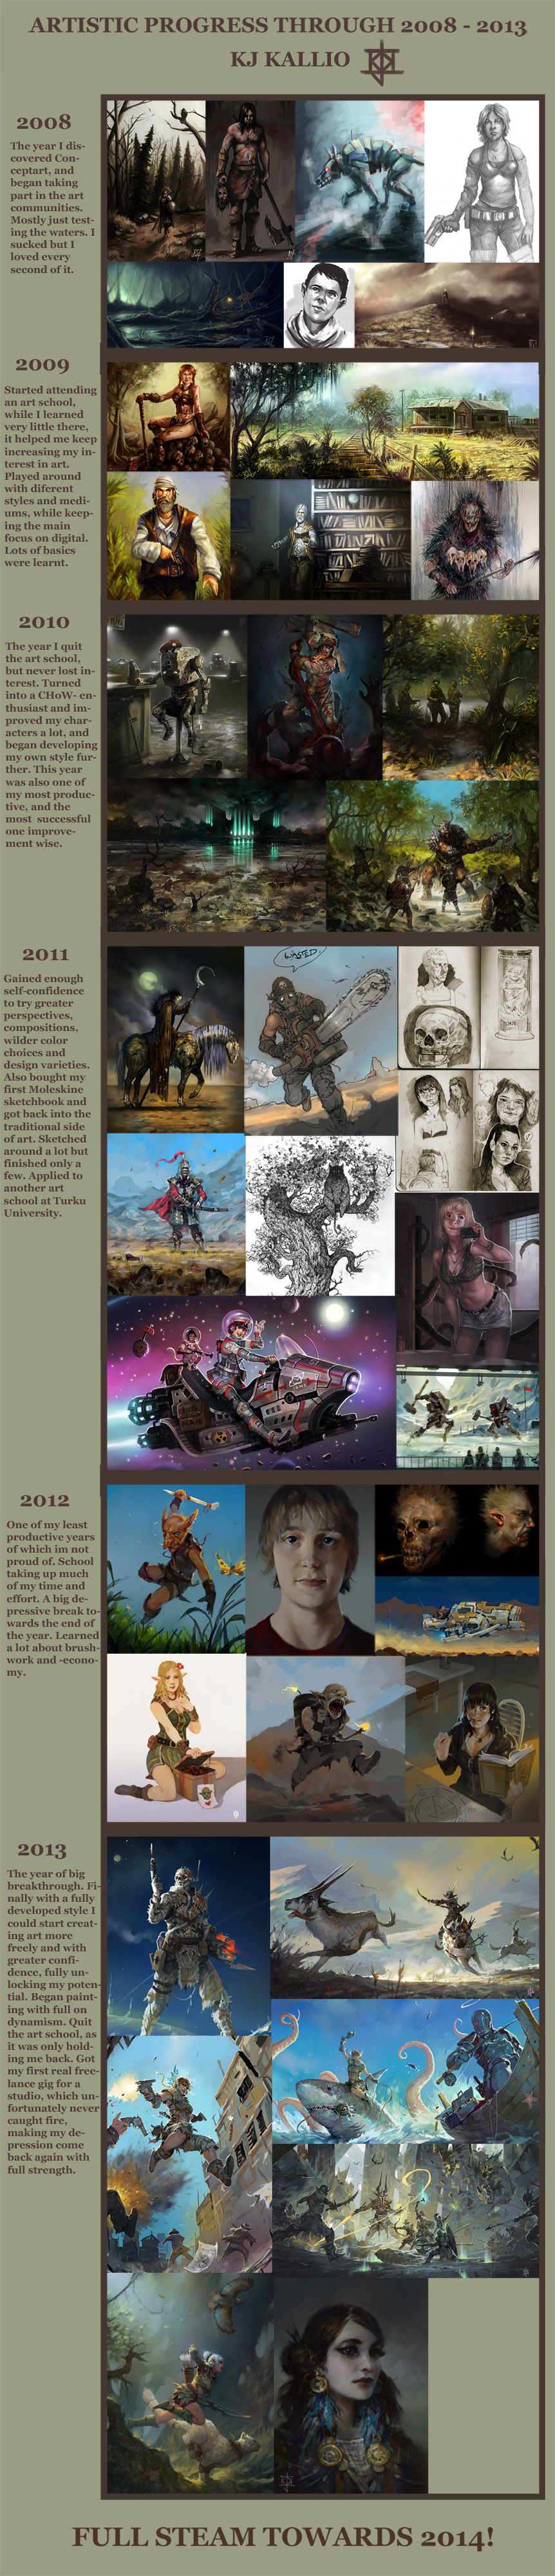 My artistic journey through 2008-2013 by KJKallio